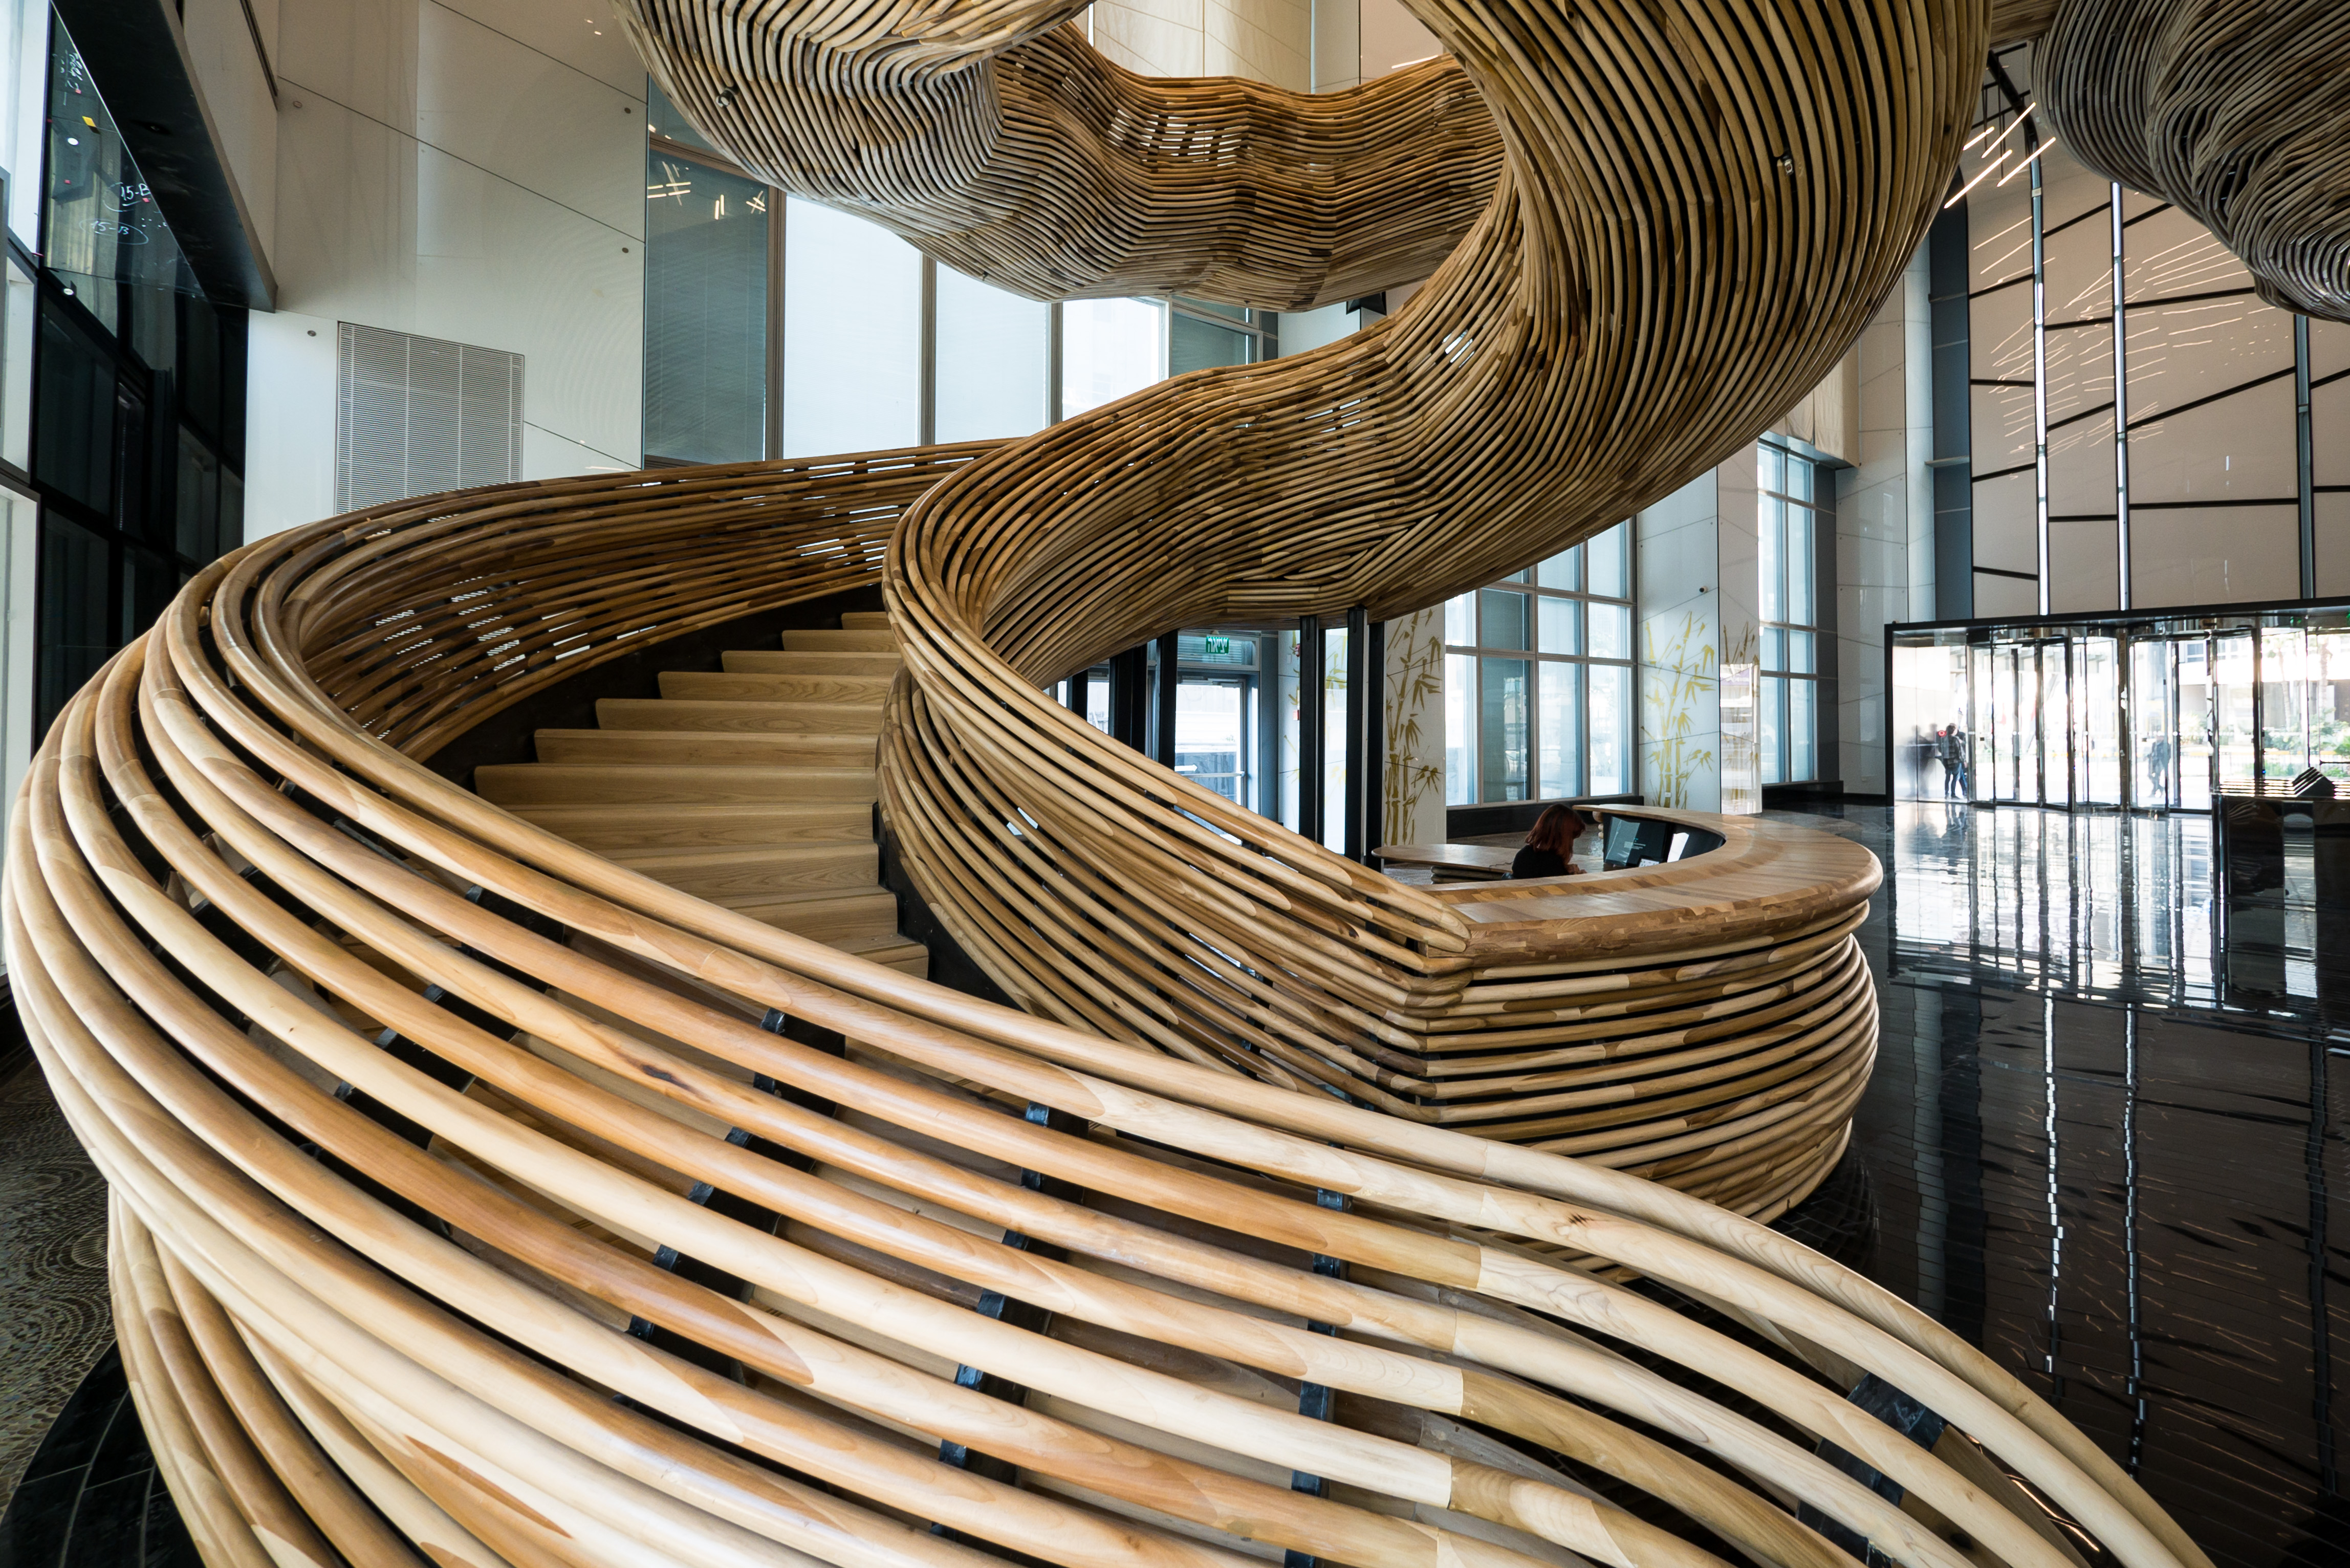 3b. Photography by ITAY SIKOLSKI - The reception desk was conceived as the starting point for the spiraling wooden sculpture, completed with the same wooden profiles as the railings(2)